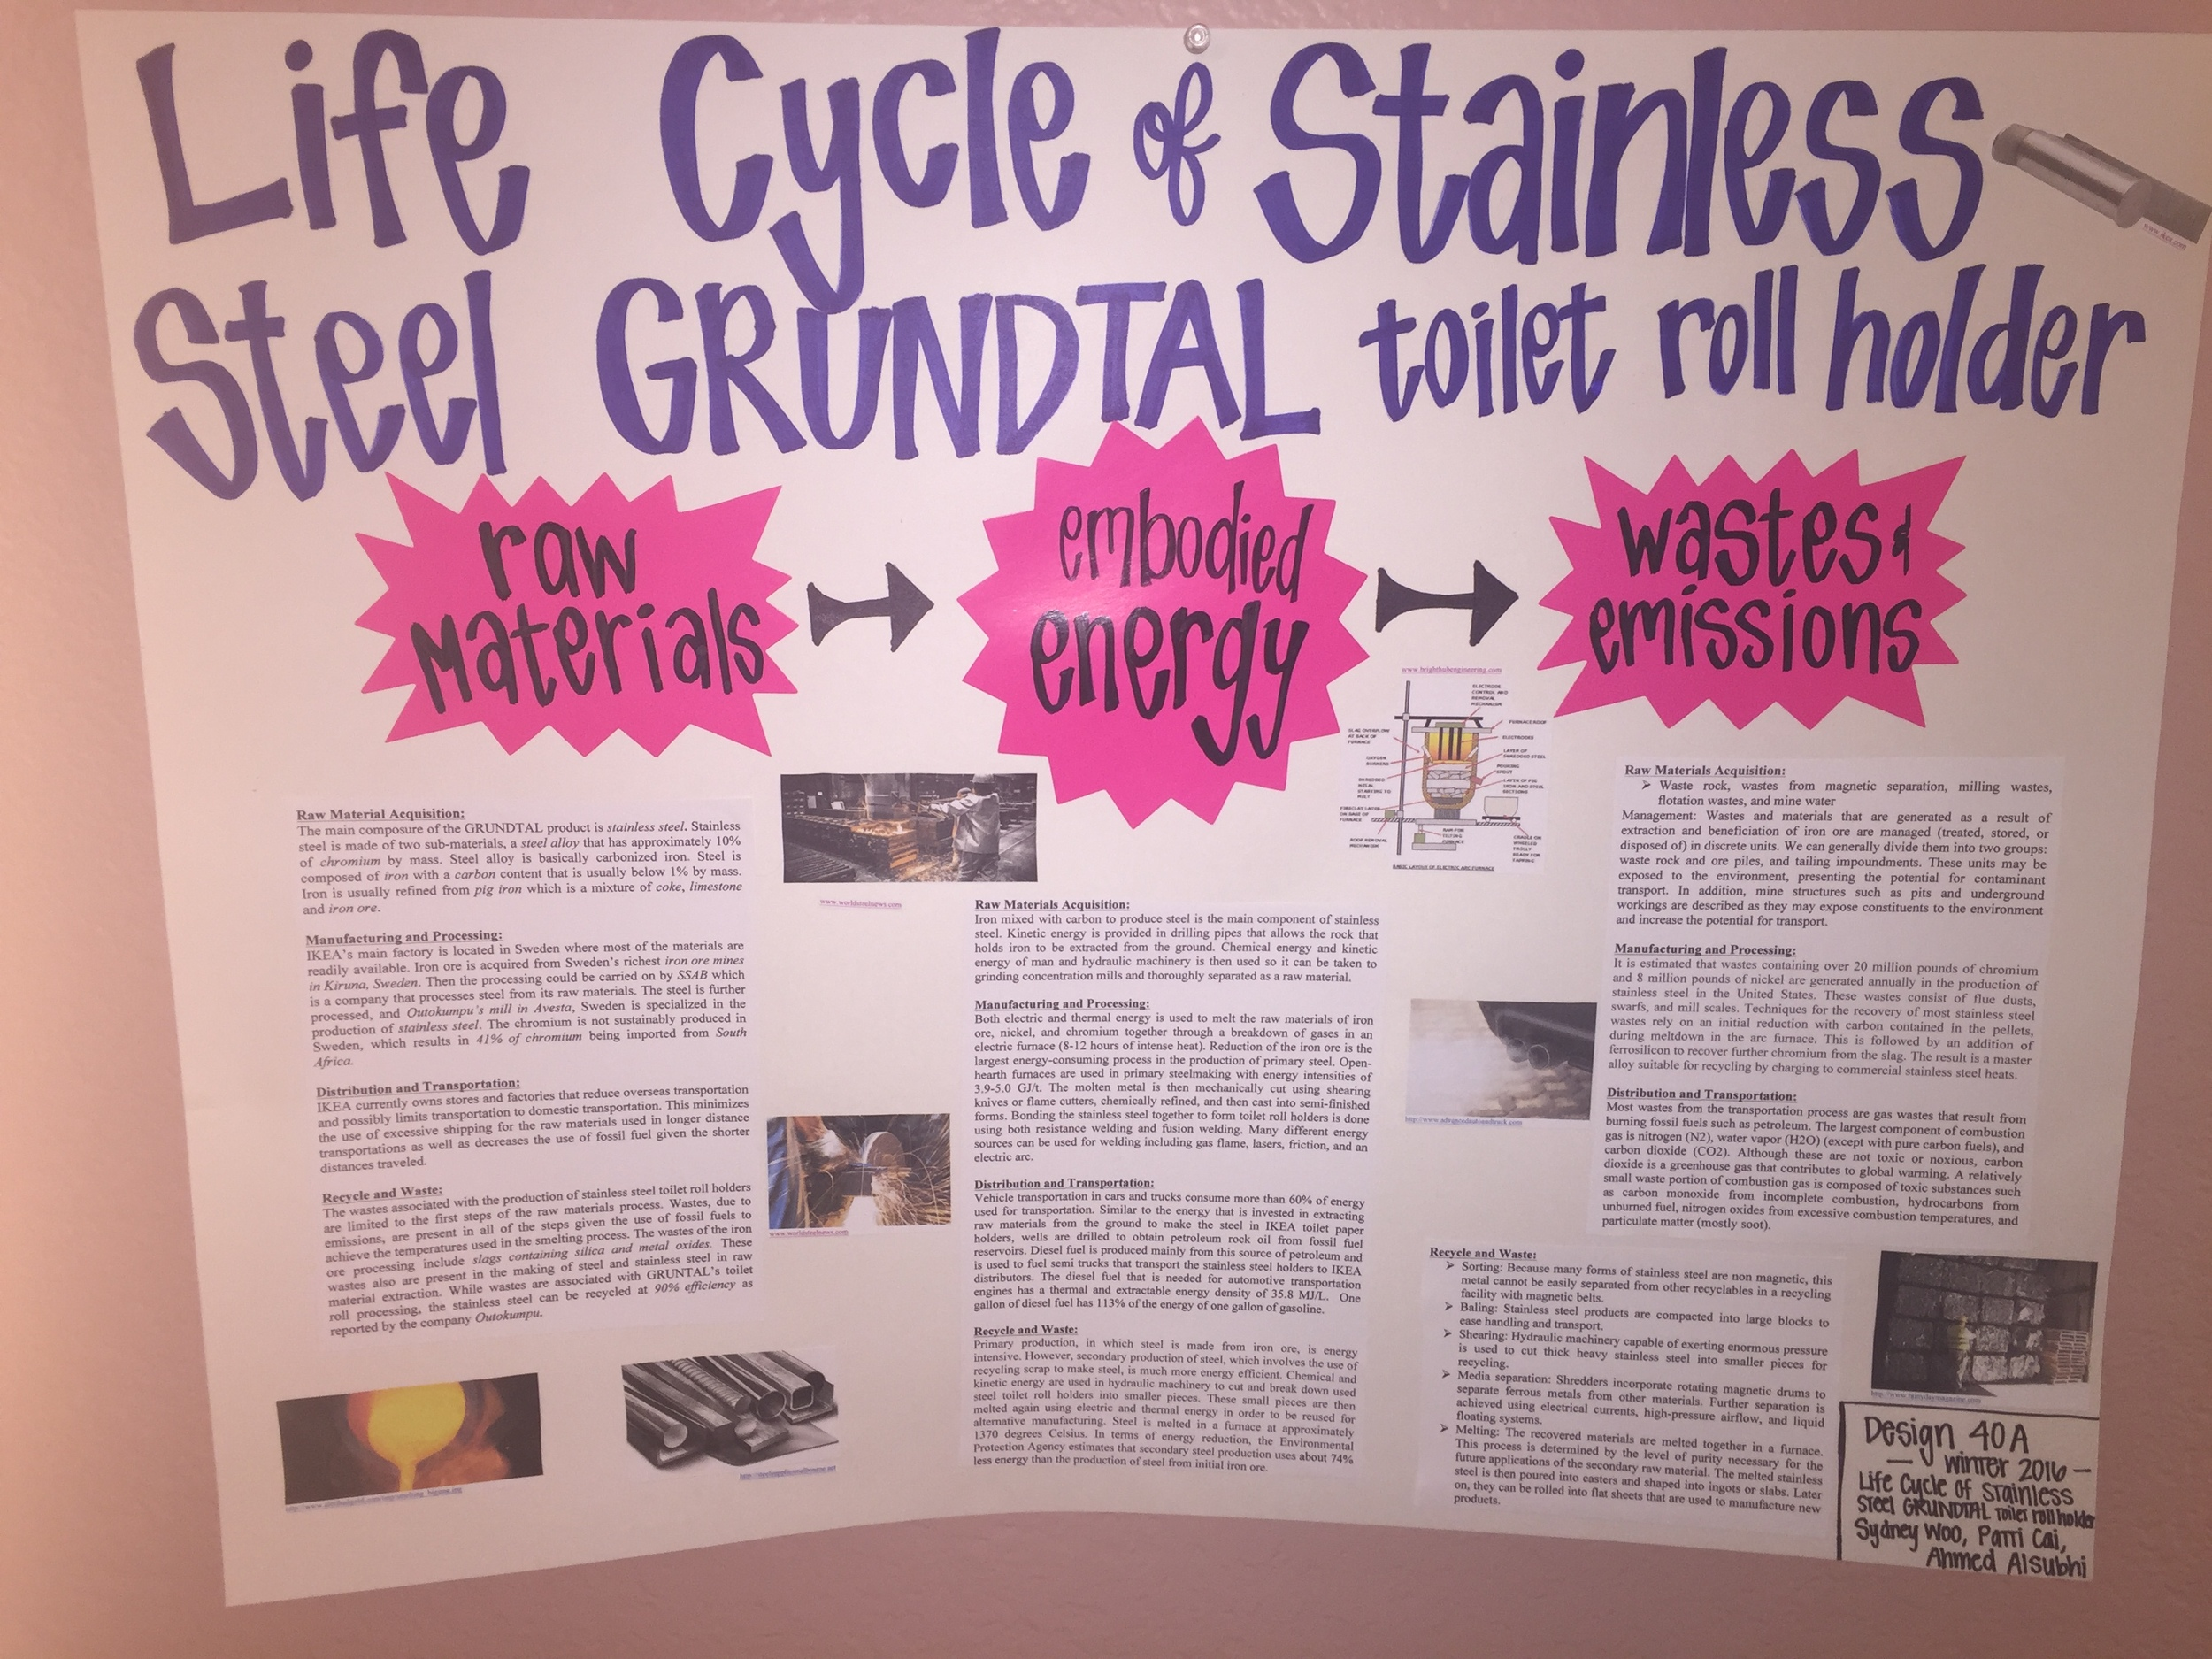 Life Cycle of Stainless Steel GRUNDTAL toilet roll holder